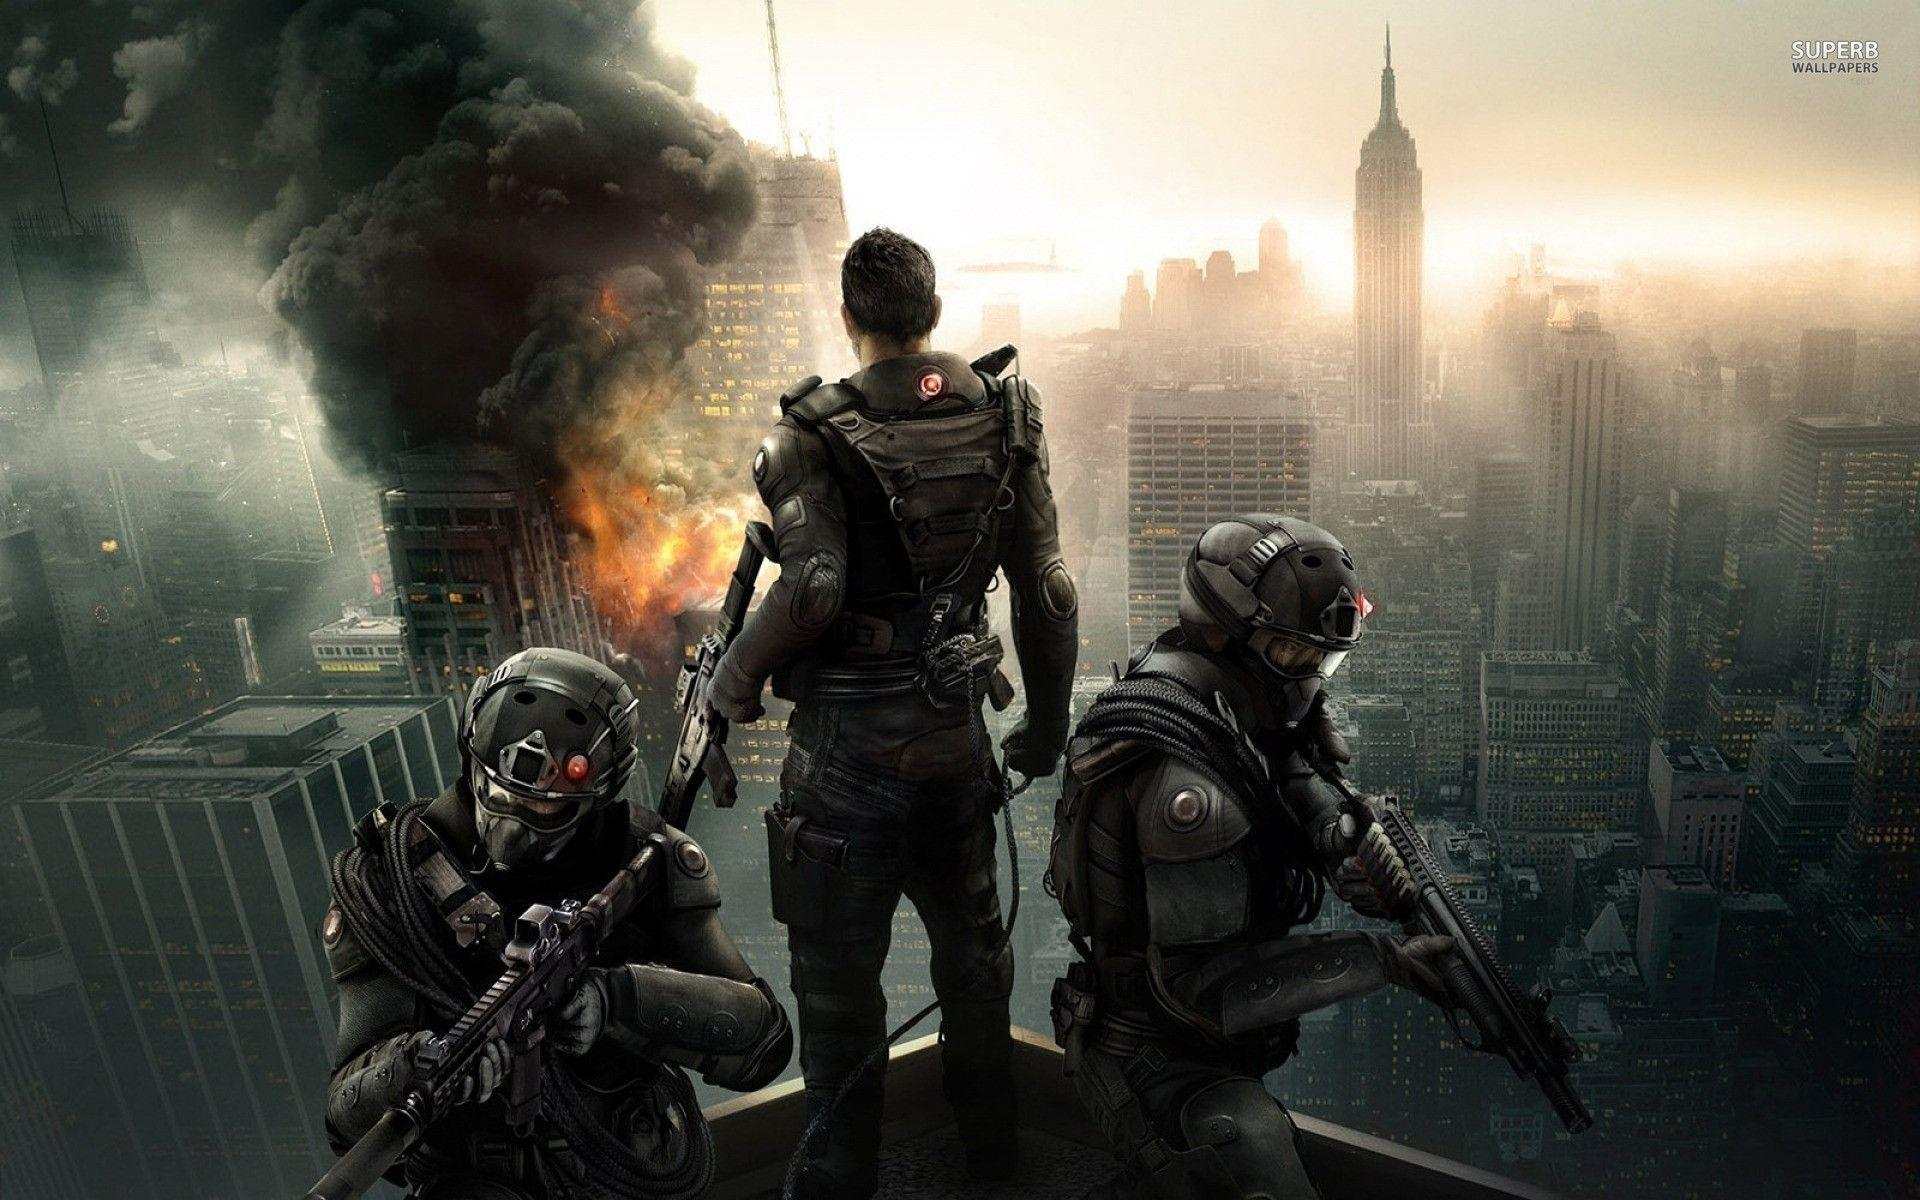 Tom Clancy's The Division Game wallpapers (125 Wallpapers ...